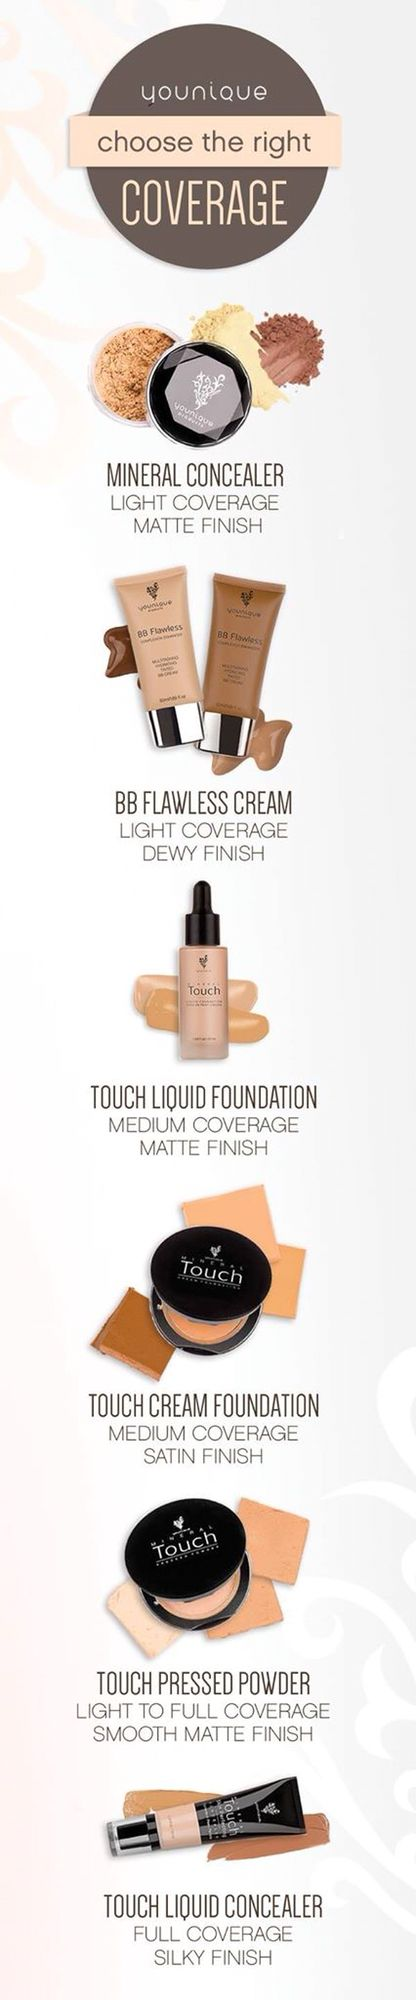 Foundations for all! www.youniqueproducts.com/samanthastuart31